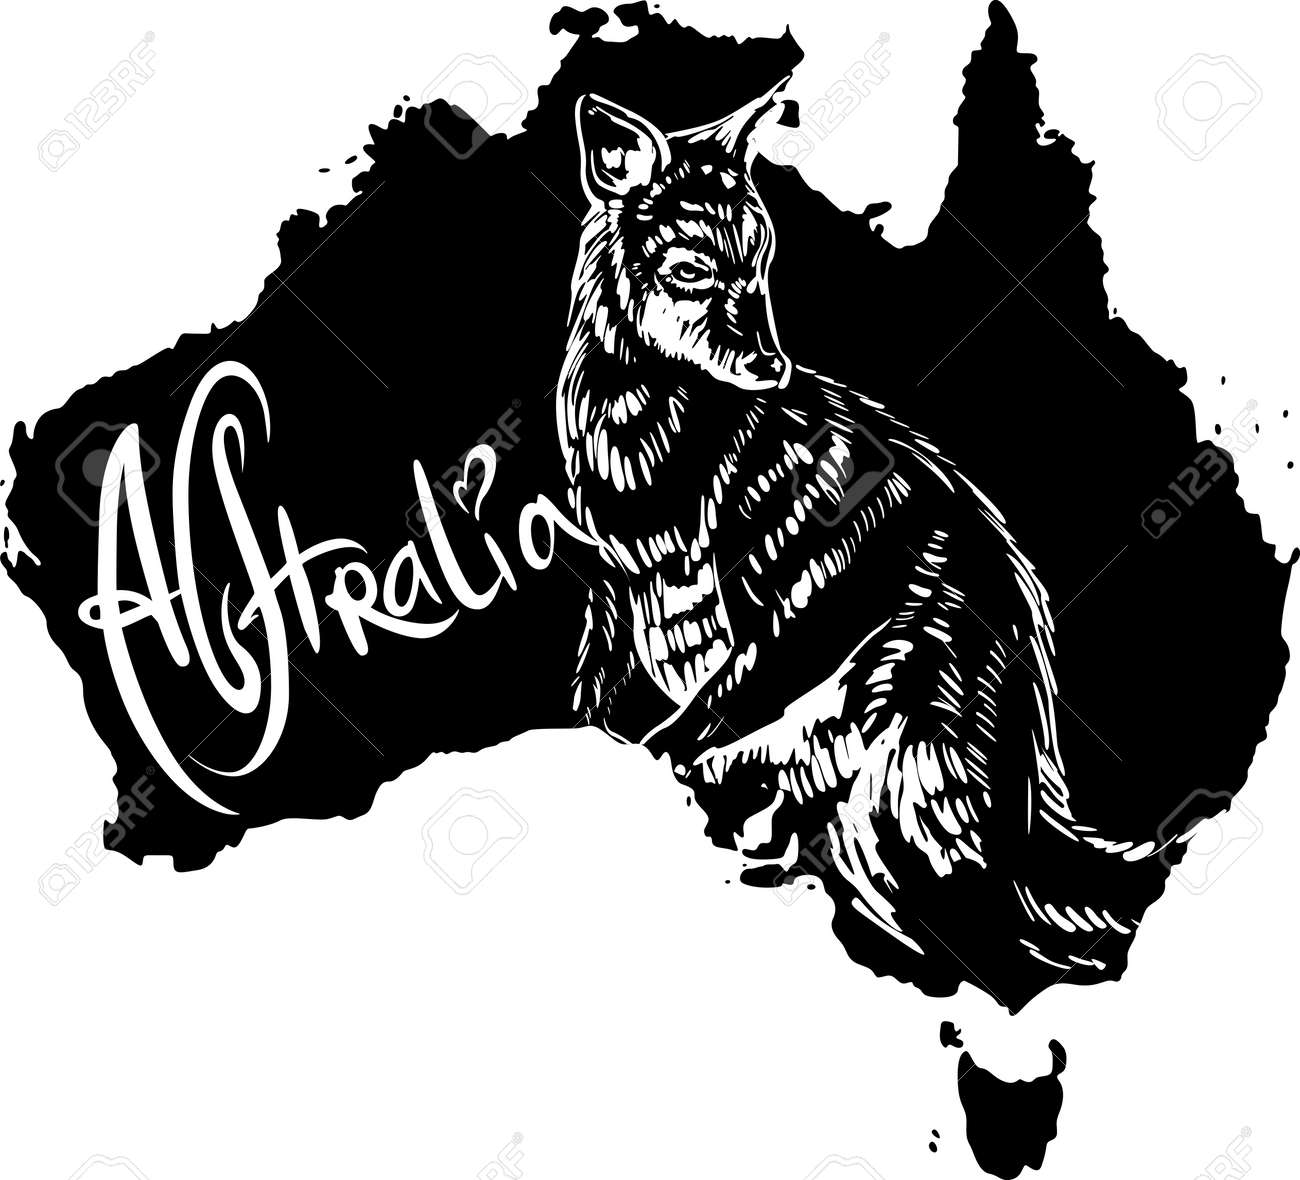 Wallaby on map of Australia. Black and white vector illustration. Stock Vector - 15783339